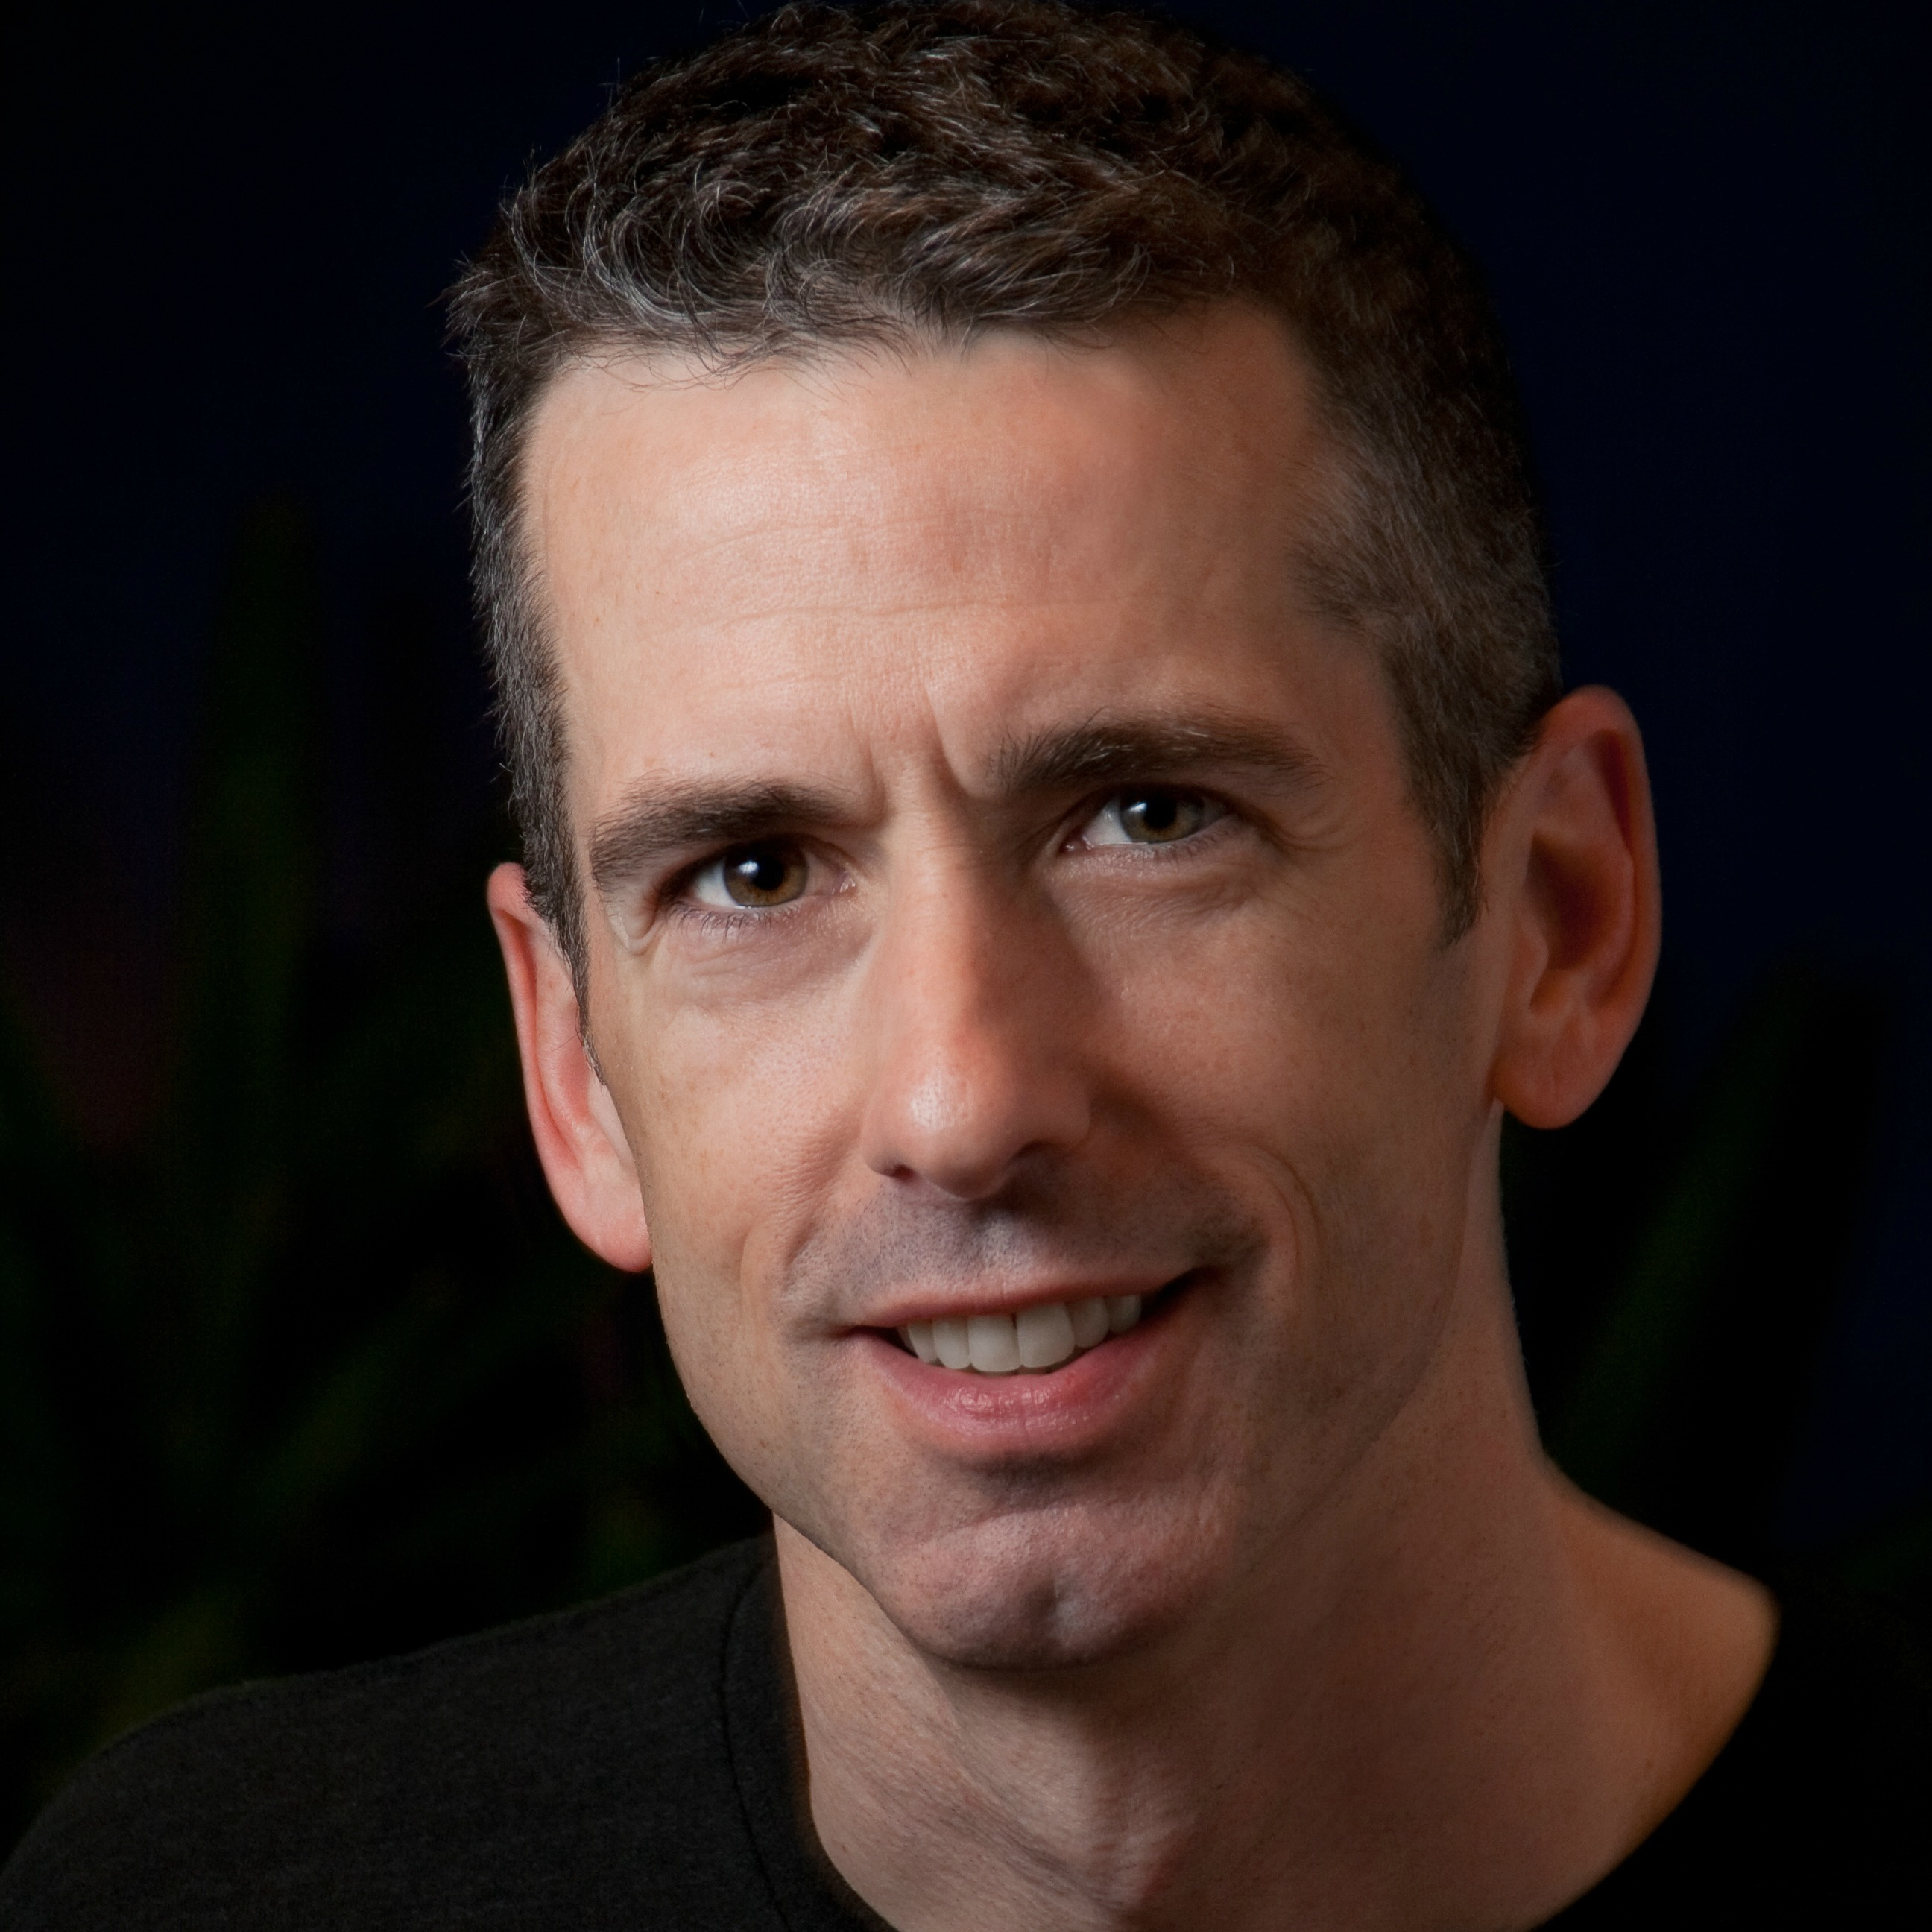 Dan Savage Interviewed, Feminist Bibliophiles, and More LGBT News